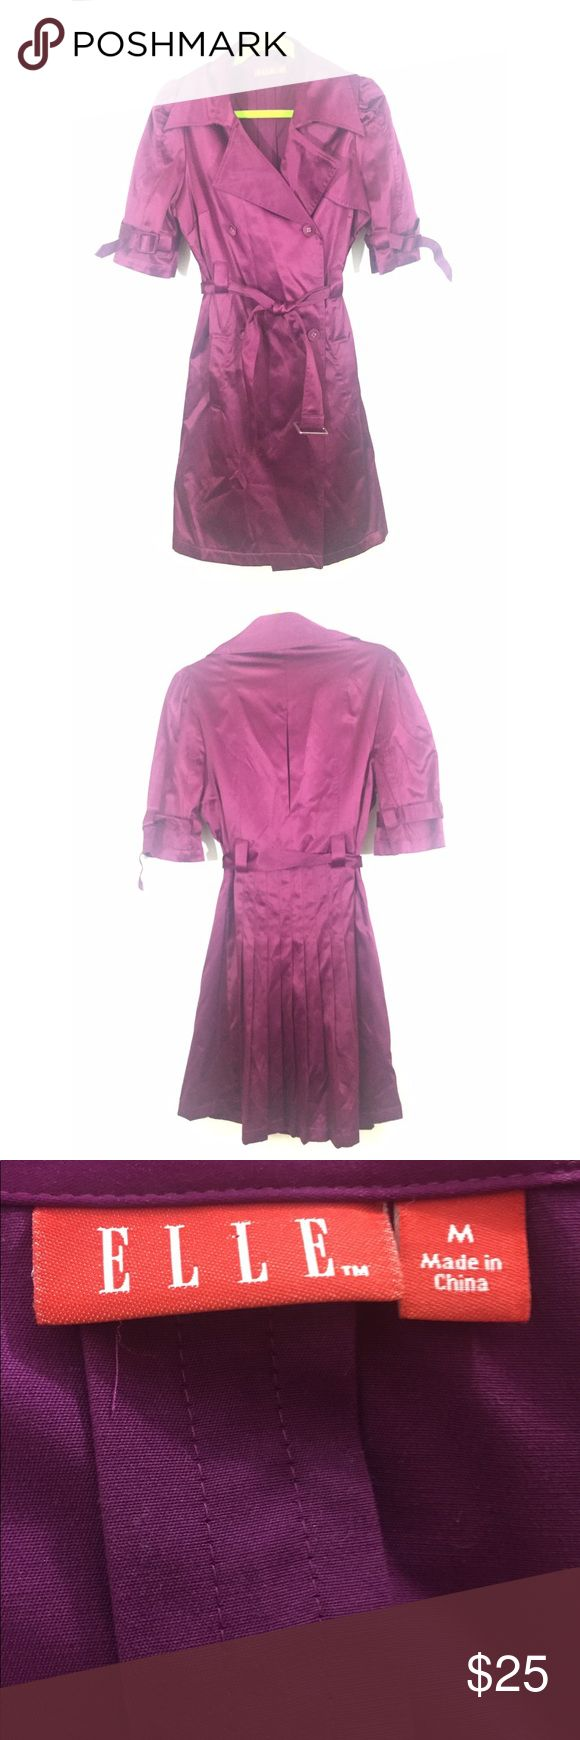 """Elle short sleeve trench coat/jacket Gorgeous purple/fuchsia colored trench. Elle size medium. Silky feel medium weight jacket. Cinch tie waist with belt. Pleated skirt in back. Bust 21"""", waist 18"""", length 37"""". Cotton/polyester/spandex. Machine washable. elle Jackets & Coats Trench Coats"""